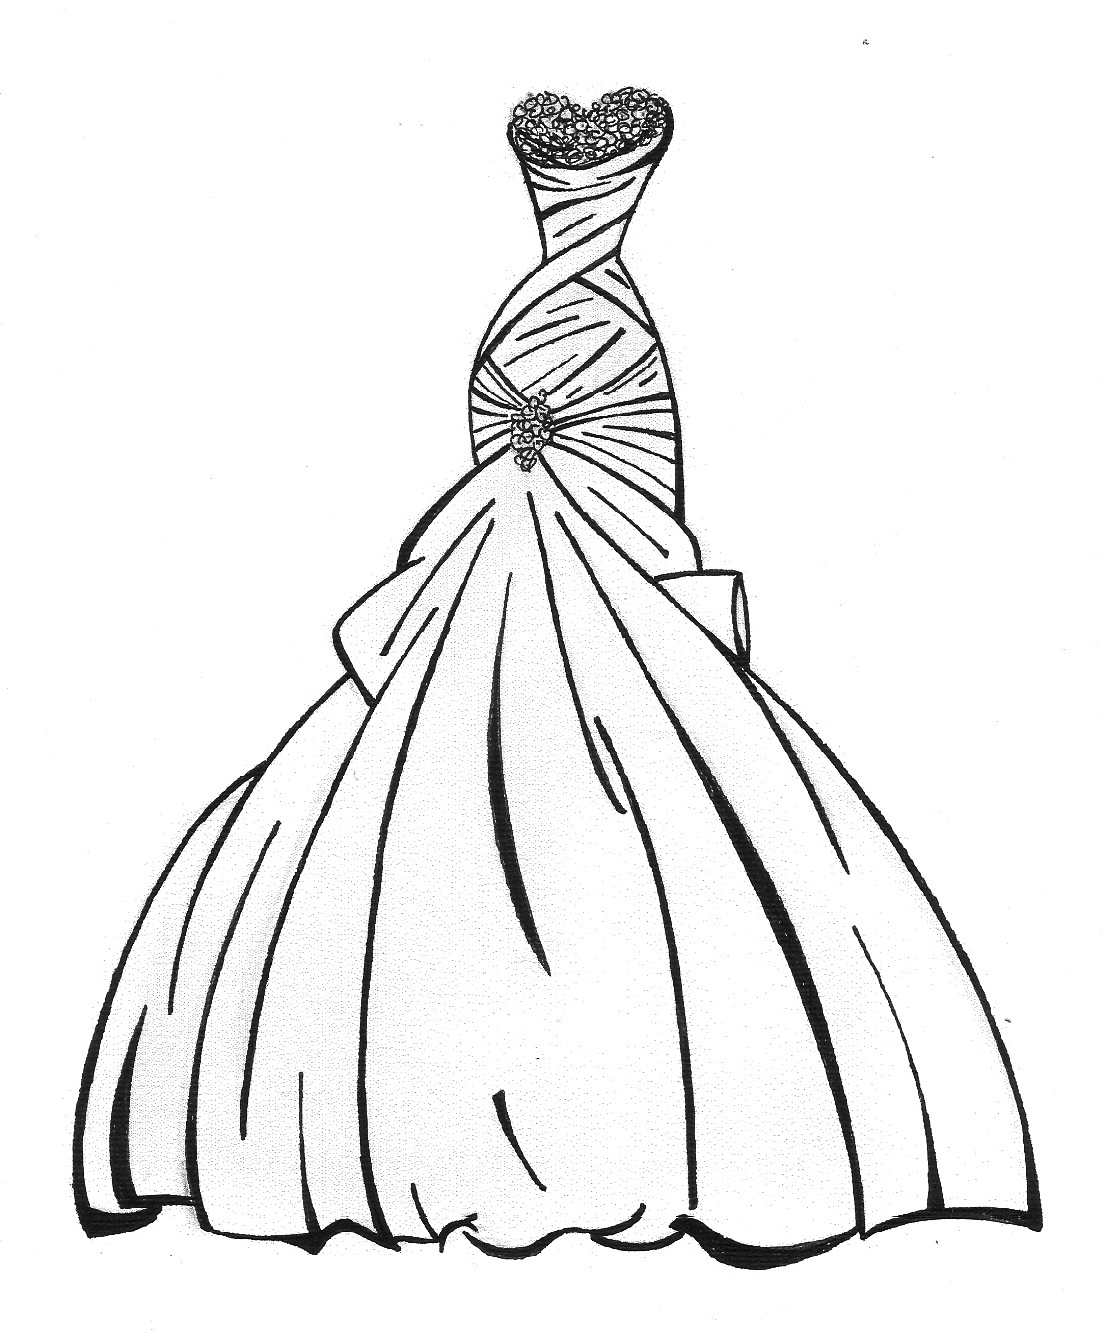 coloring princess dress princess in ball gown dress coloring page free printable princess dress coloring